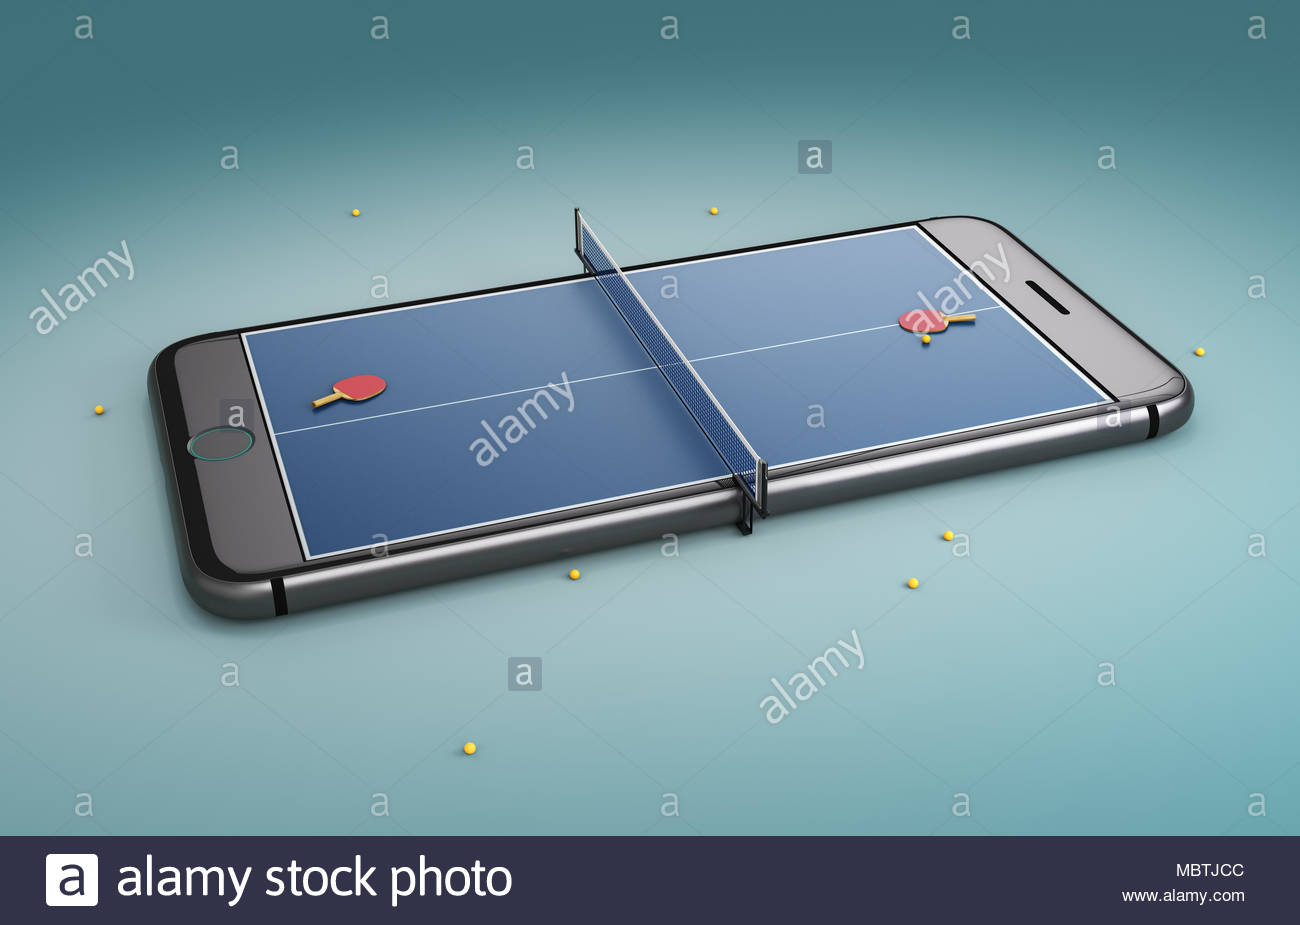 Mobile phone screen ping pong game concept. Minimal tennis table background design Stock Photo